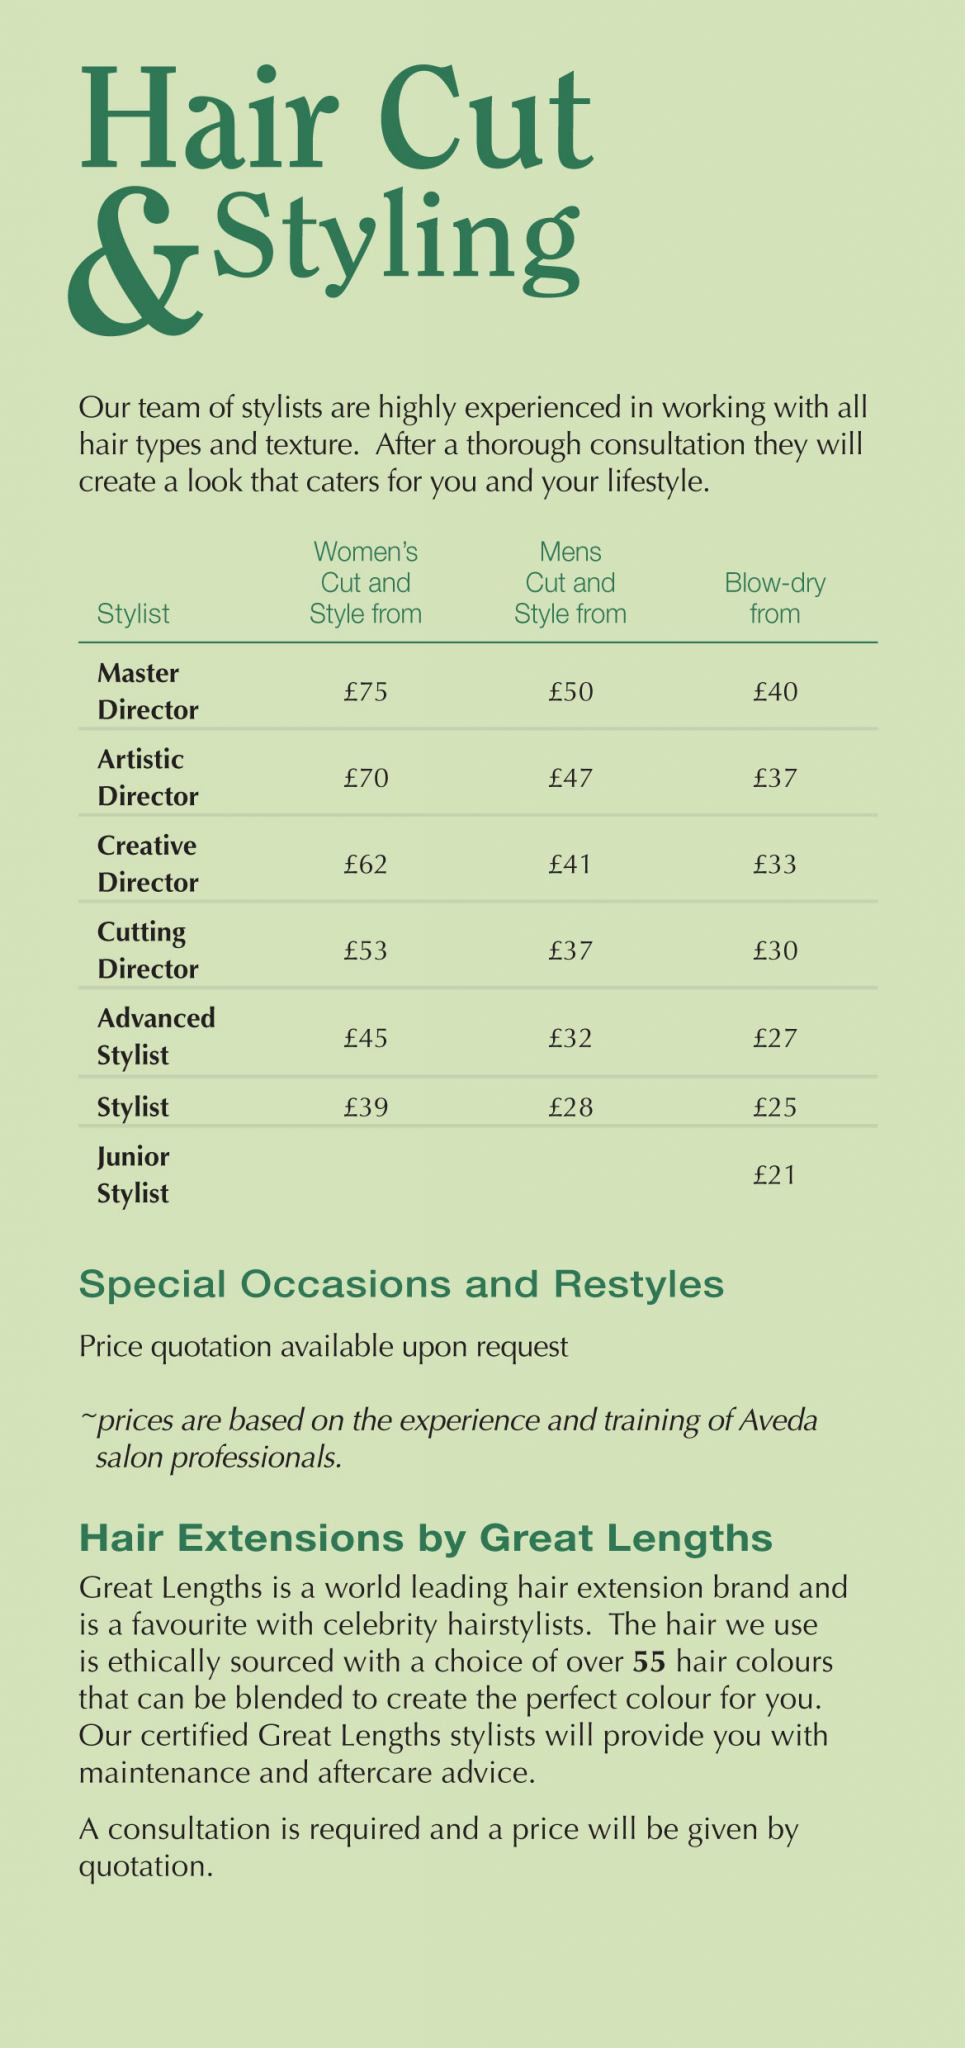 Gents' Hair Cuts Aveda Hair Salon & Spa Surrey